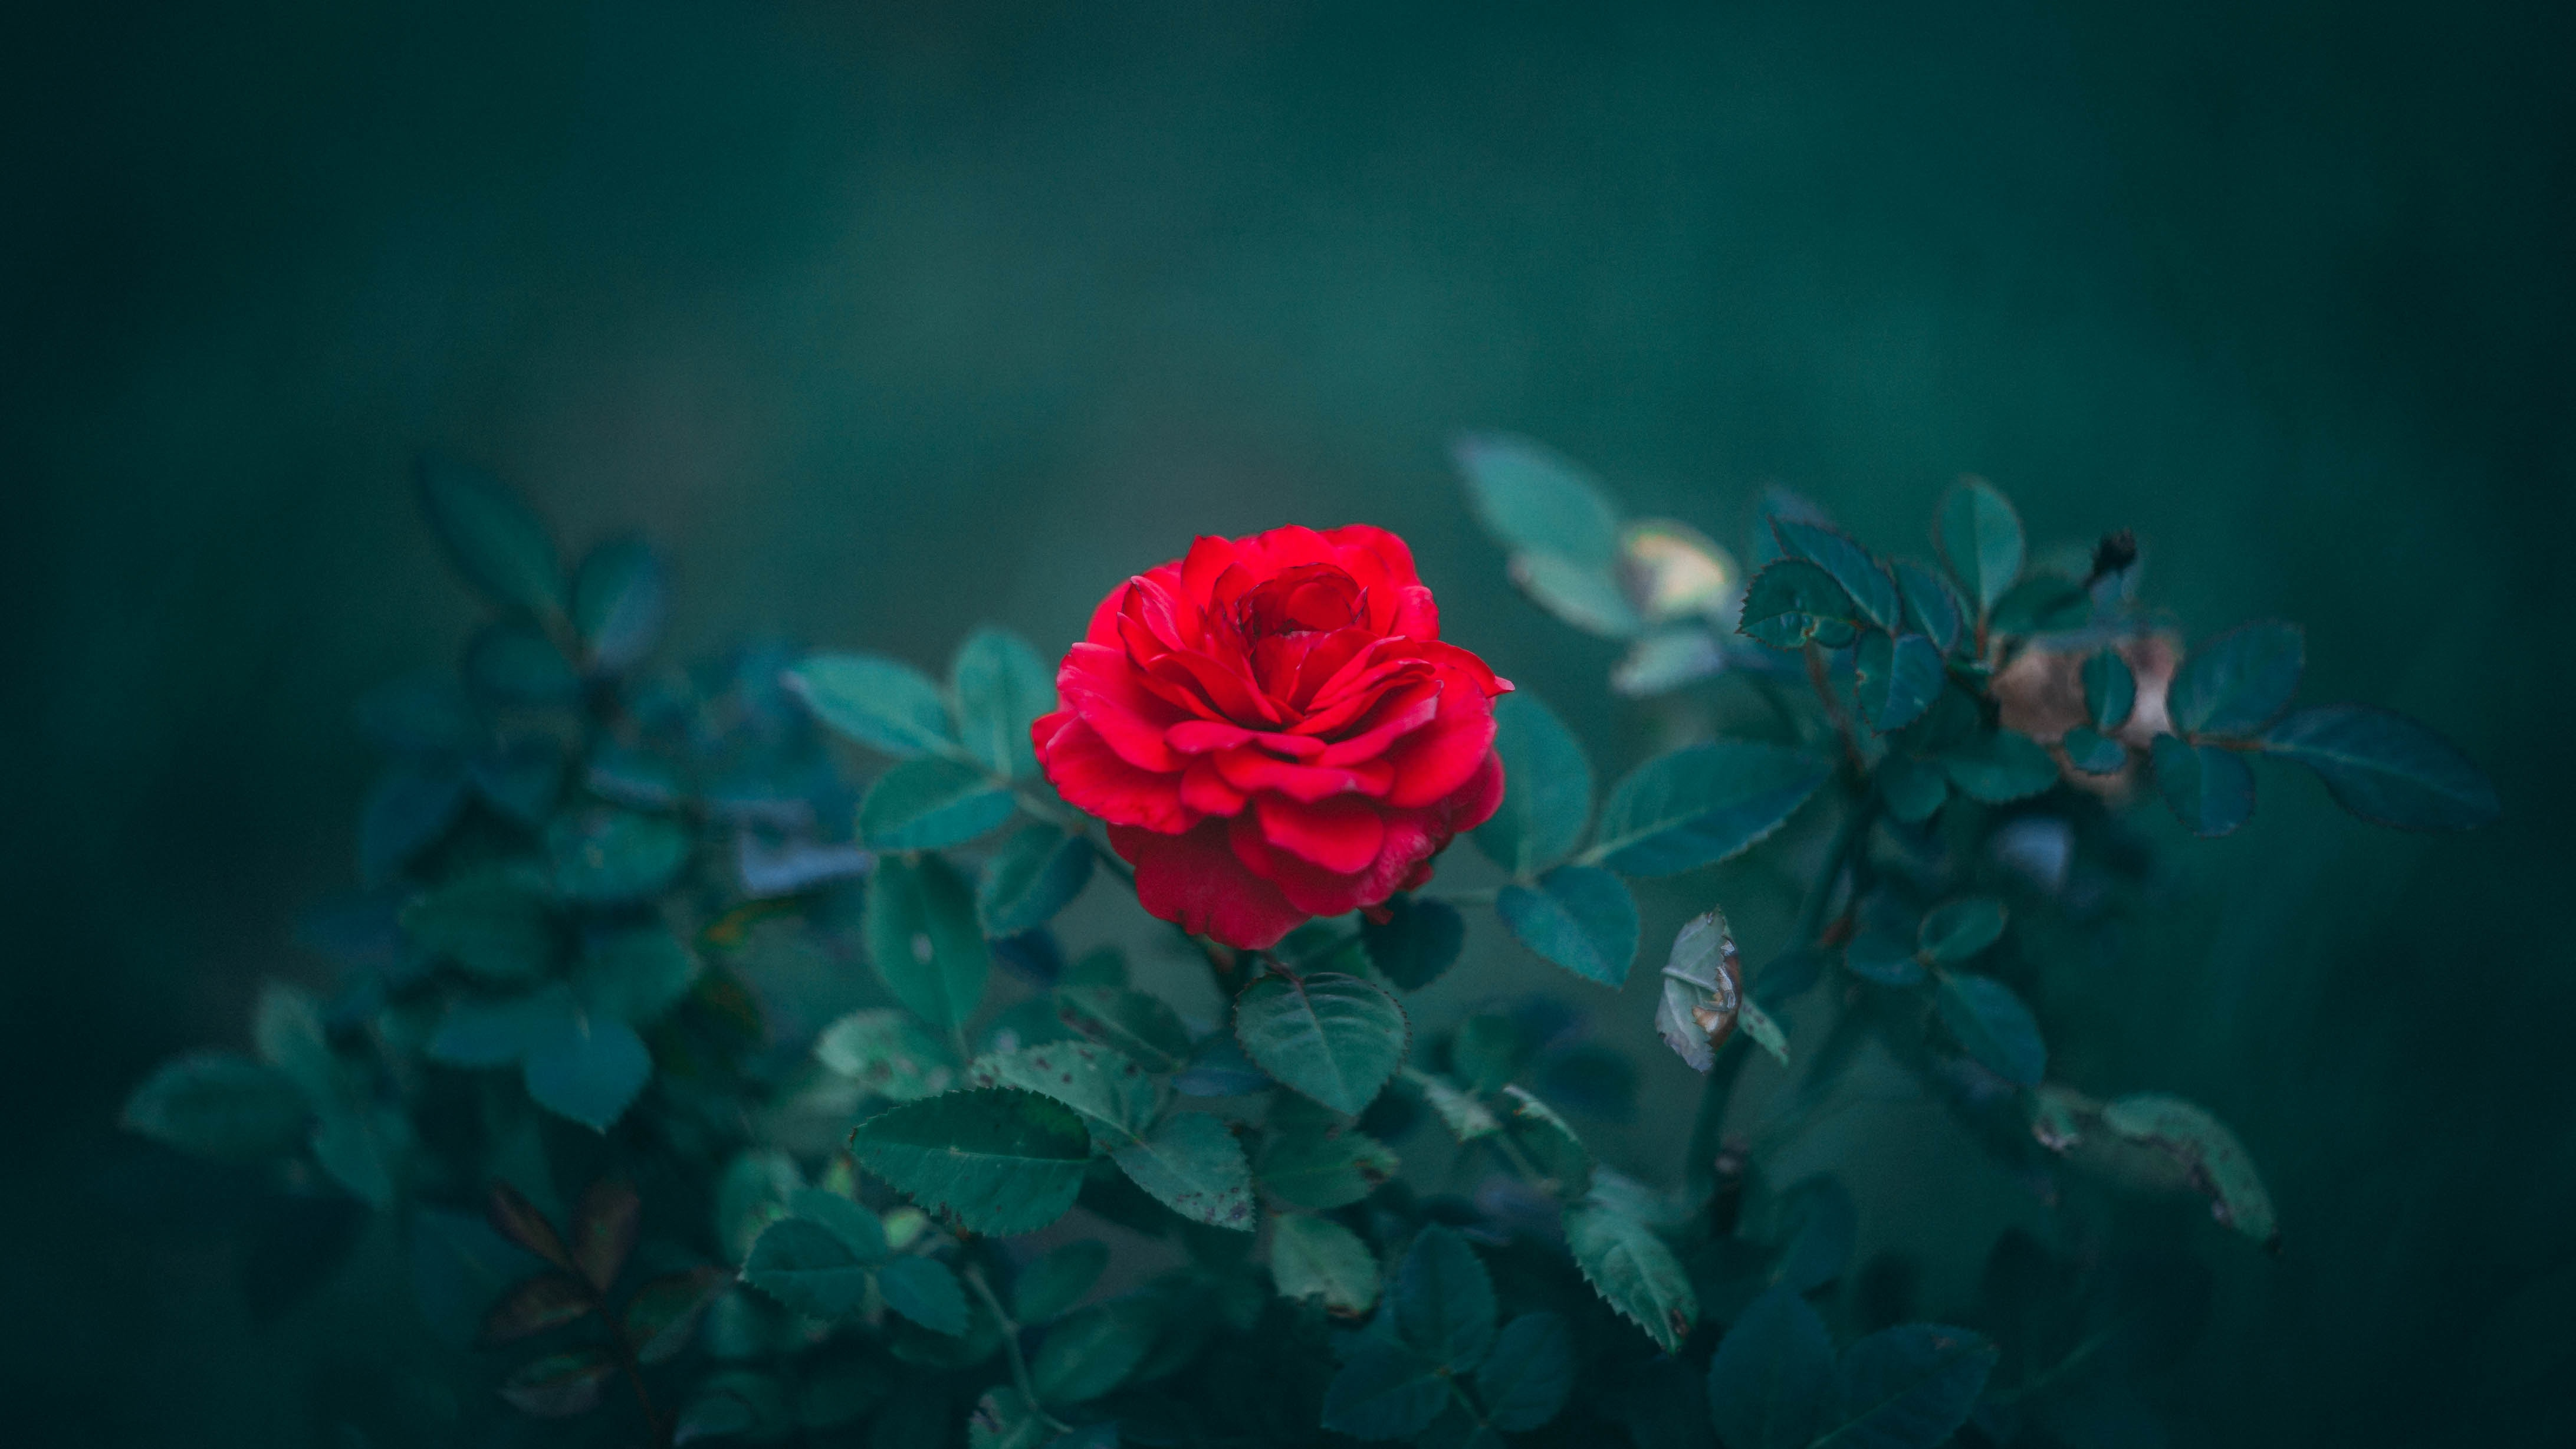 86493 download wallpaper Flowers, Leaves, Bush, Rose Flower, Rose, Bud, Blur, Smooth screensavers and pictures for free